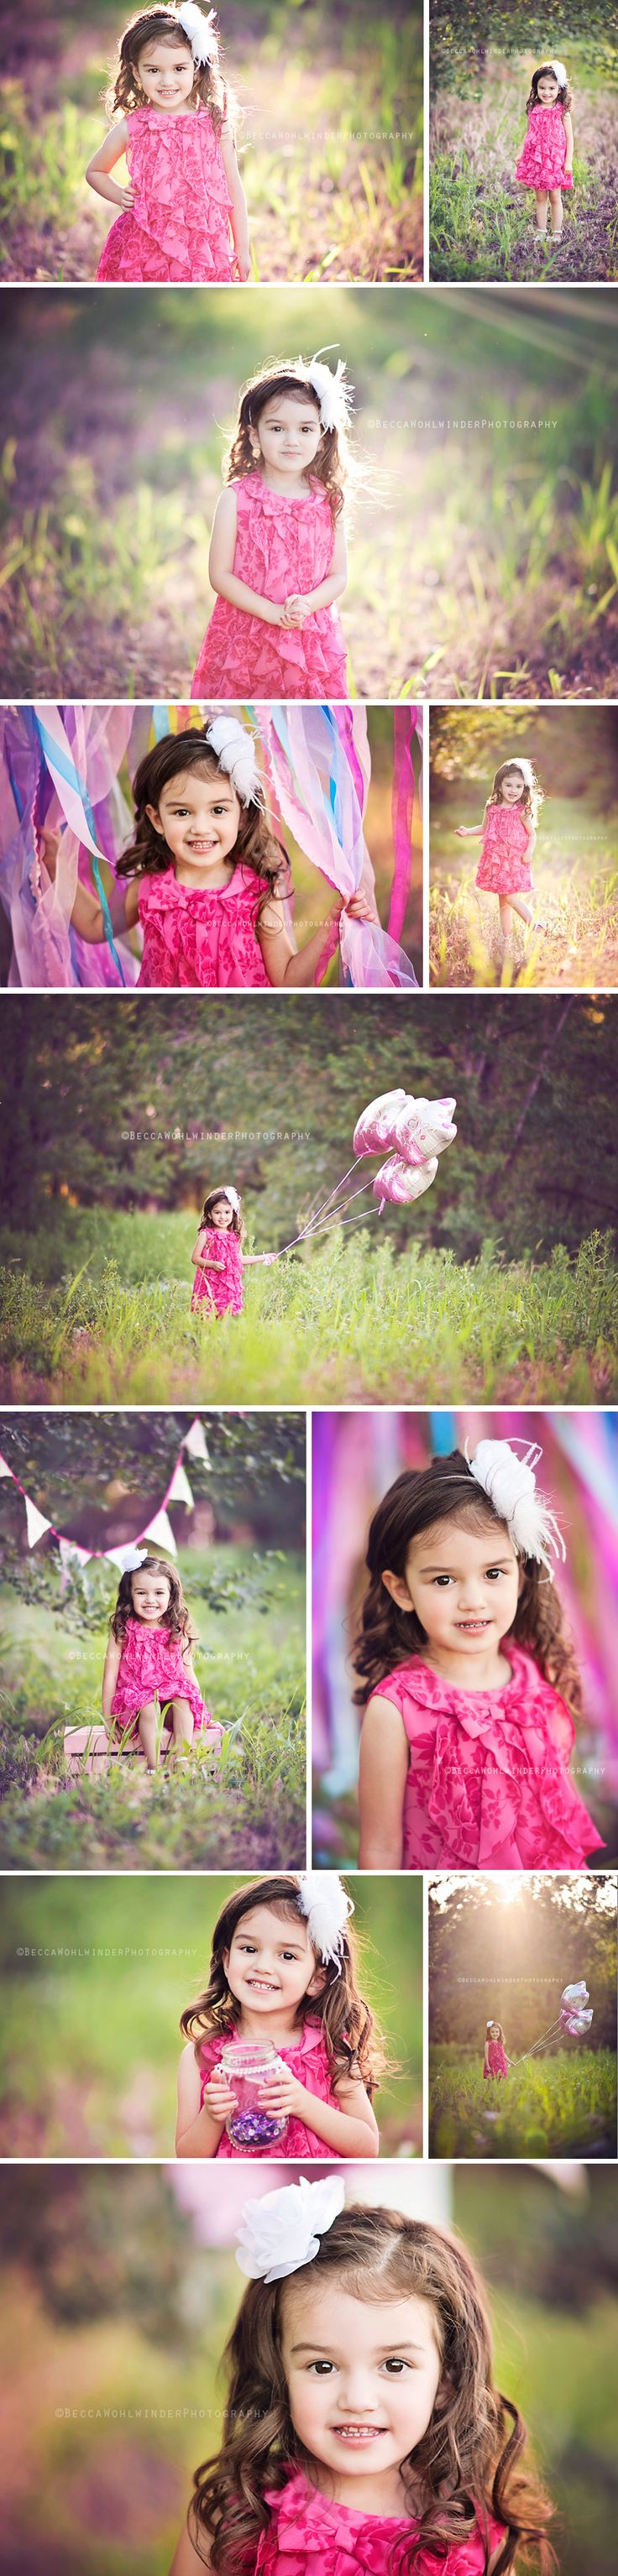 ClovisNM Childrens Photography Cannon AFB LOVE Outdoor Children PhotographyKid PhotographyPortrait IdeasPicture IdeasPhoto IdeasCute